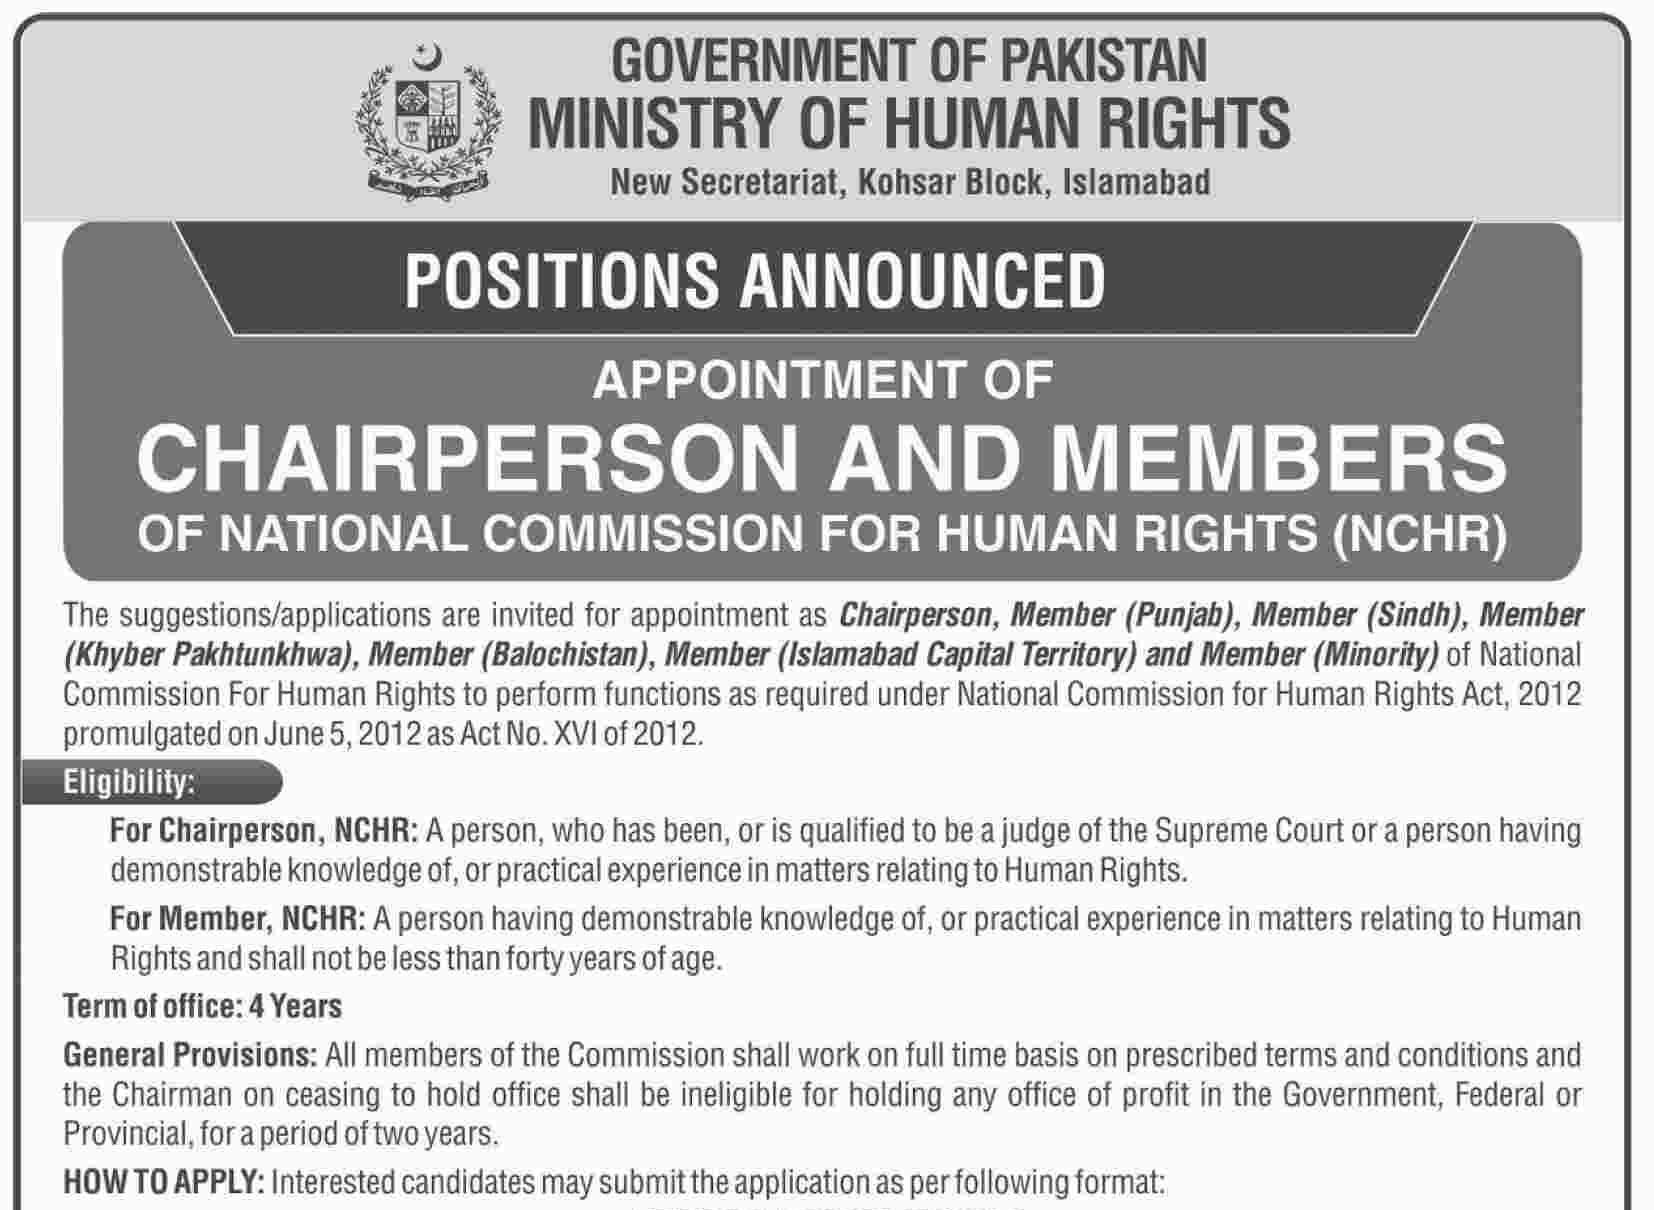 Ministry of Human Rights Islamabad Jobs 2019 for Chairperson